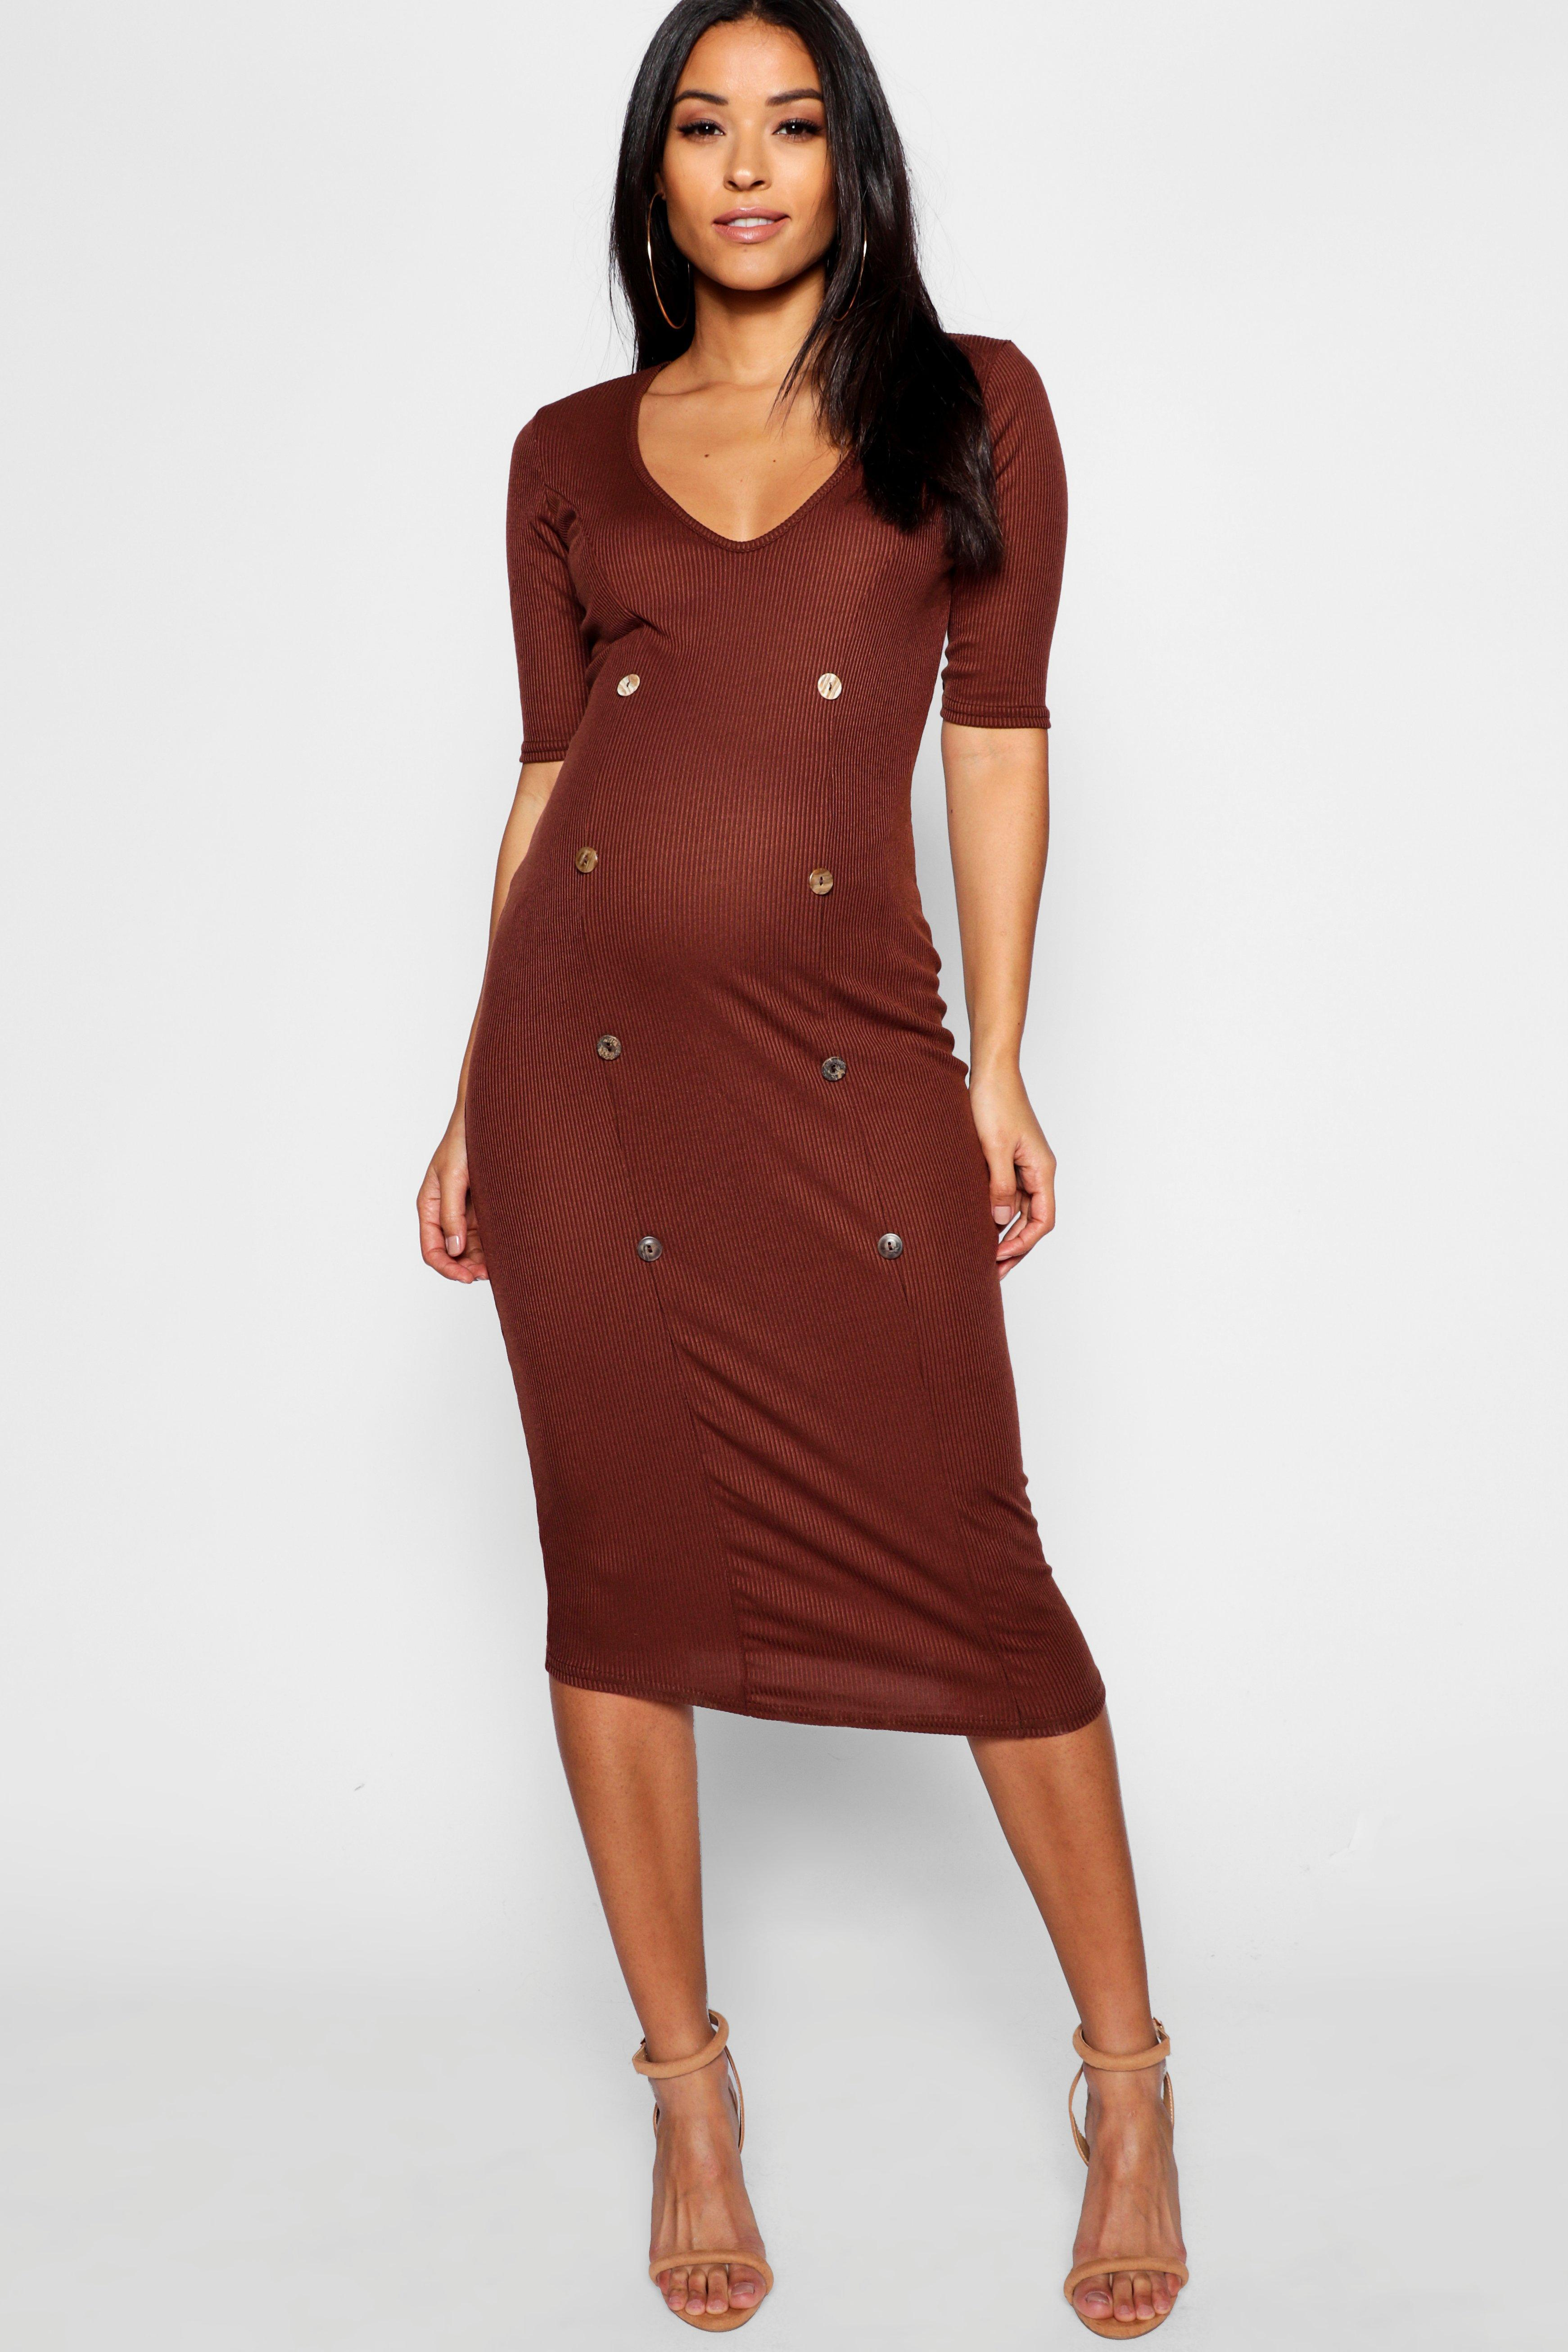 98a5d12c510 Boohoo Maternity Rib Mixed Horn Button Midi Dress in Brown - Lyst